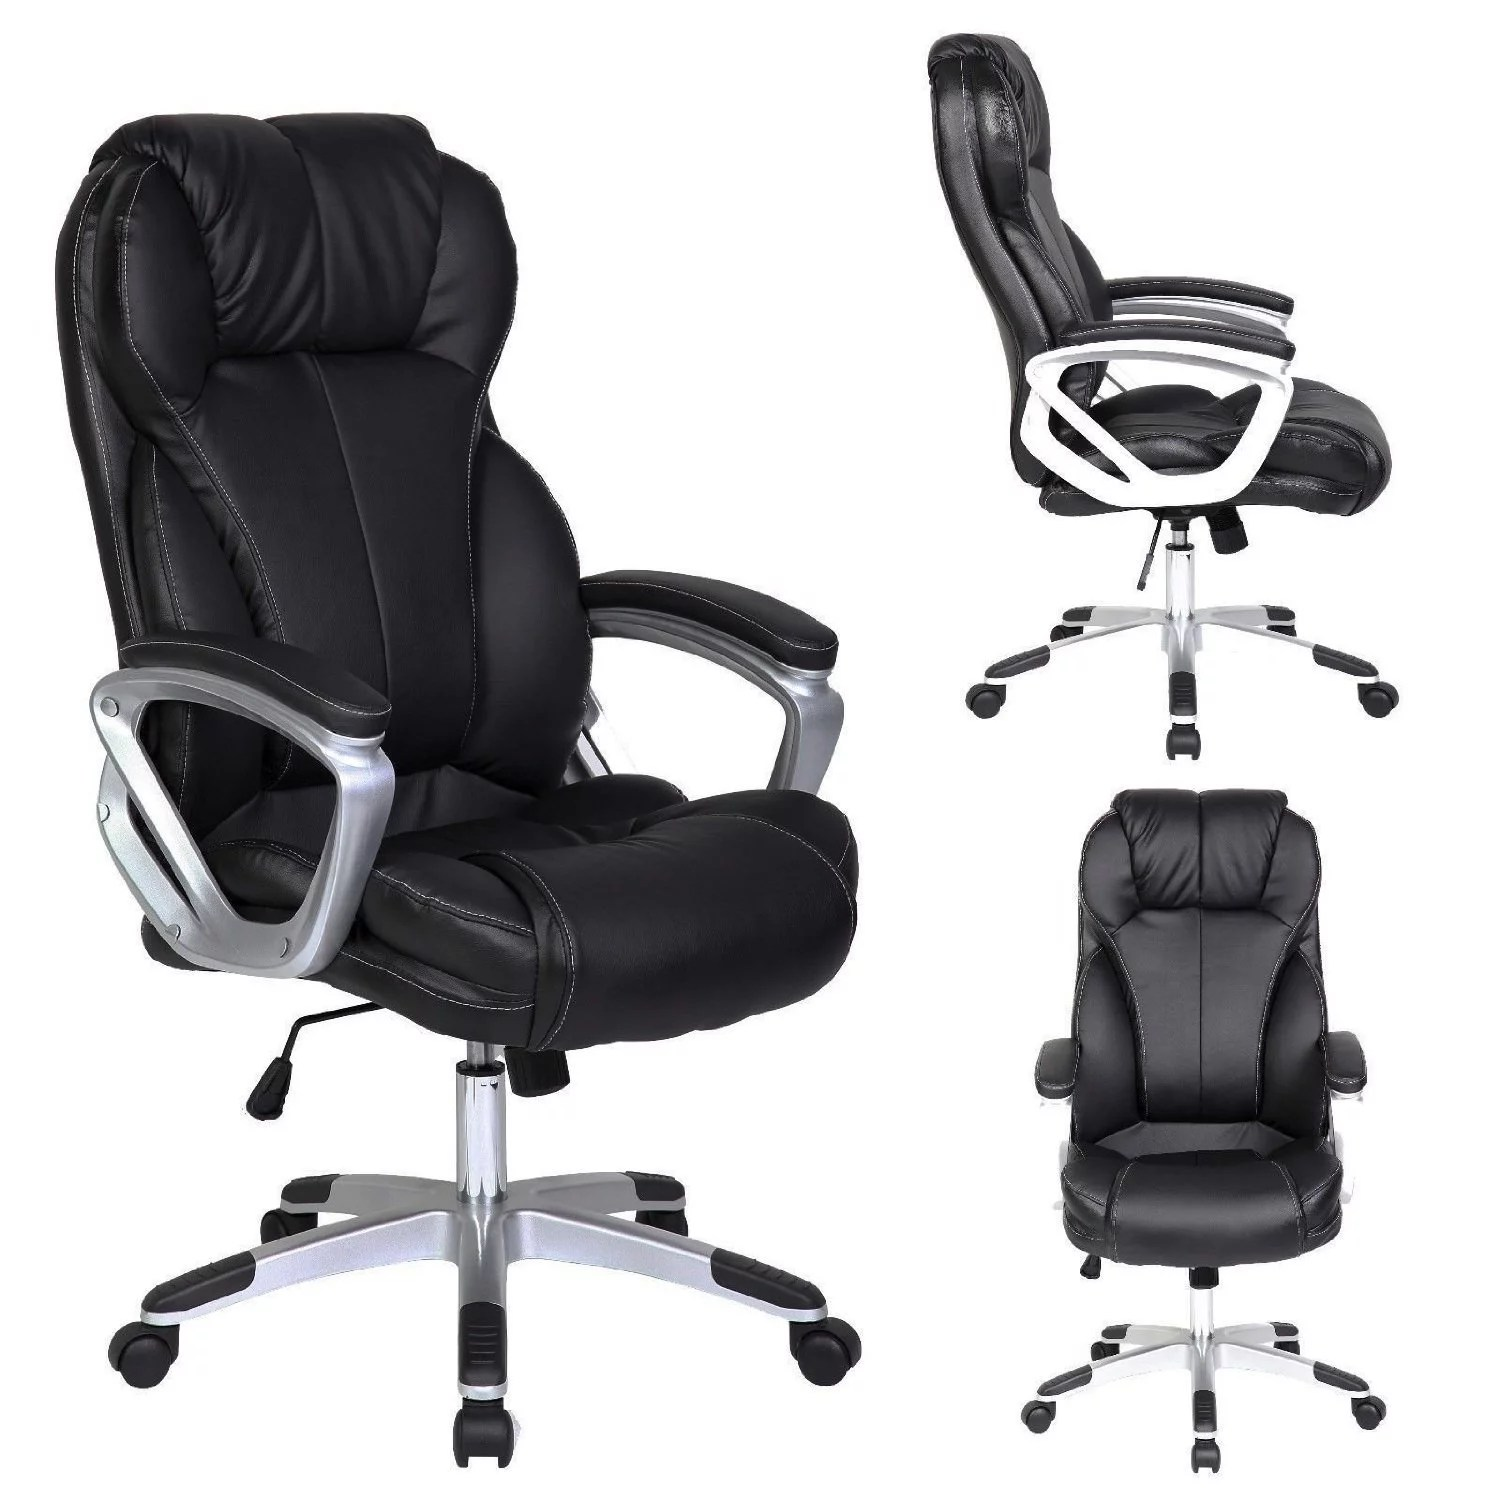 Tilt Back Chair 2xhome Black Deluxe Professional Pu Leather Big Tall Ergonomic Office High Back Chair Manager Task Conference Executive Swivel Tilt Padded Arms